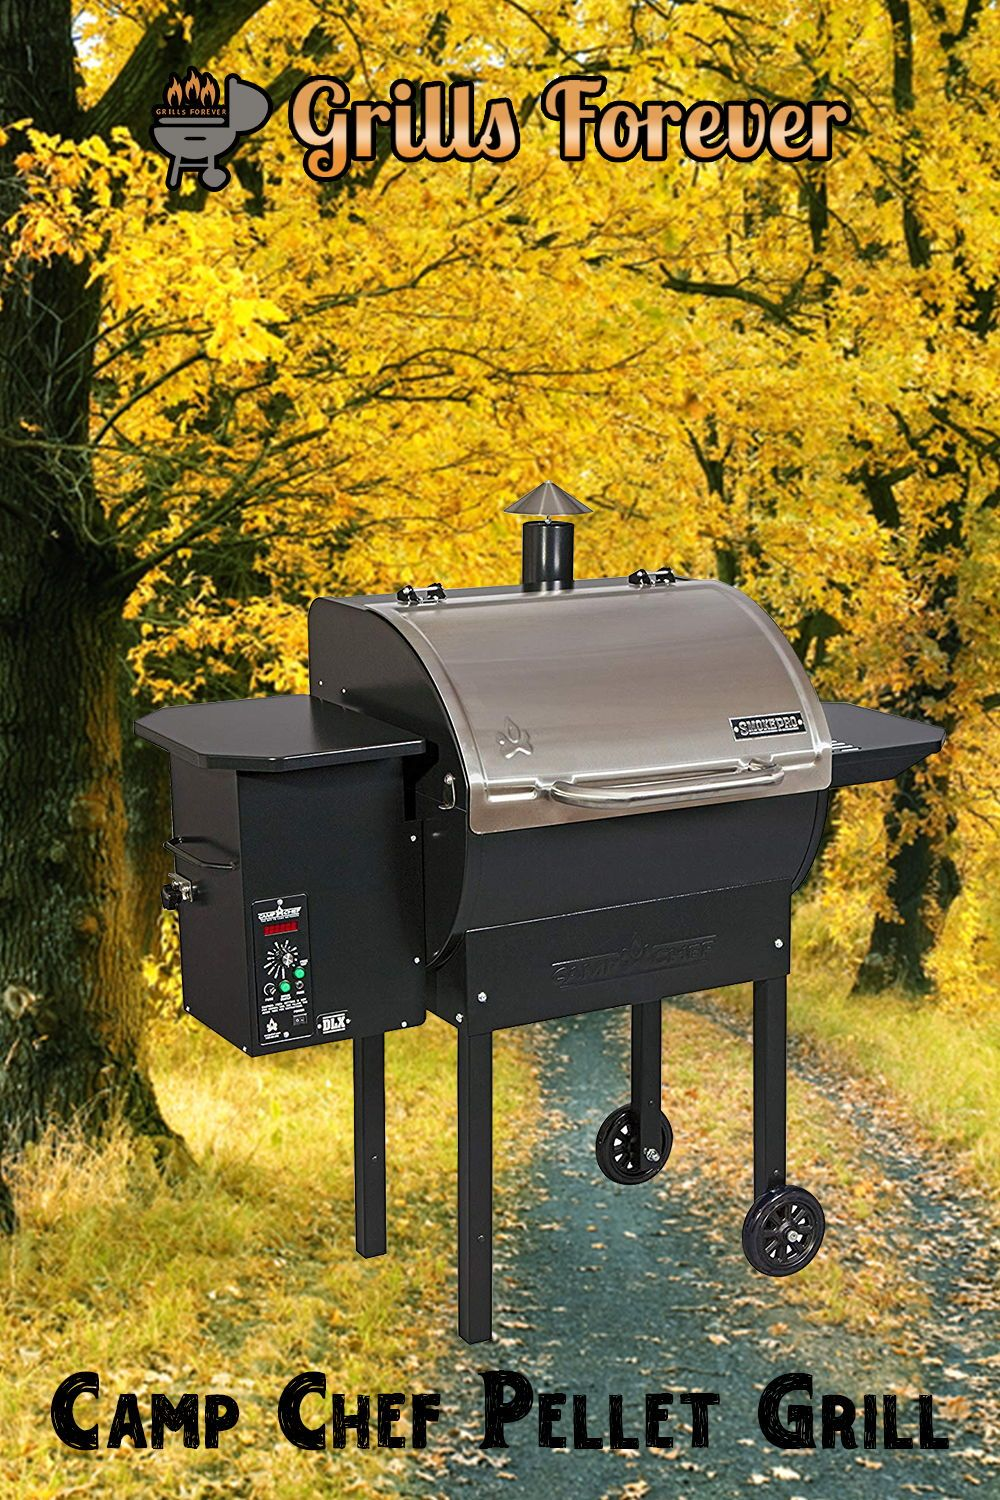 Camp Chef Pellet Grill Smoker Deluxe Review Grills Forever Pellet Grill Pellet Grills Smokers Camp Chef